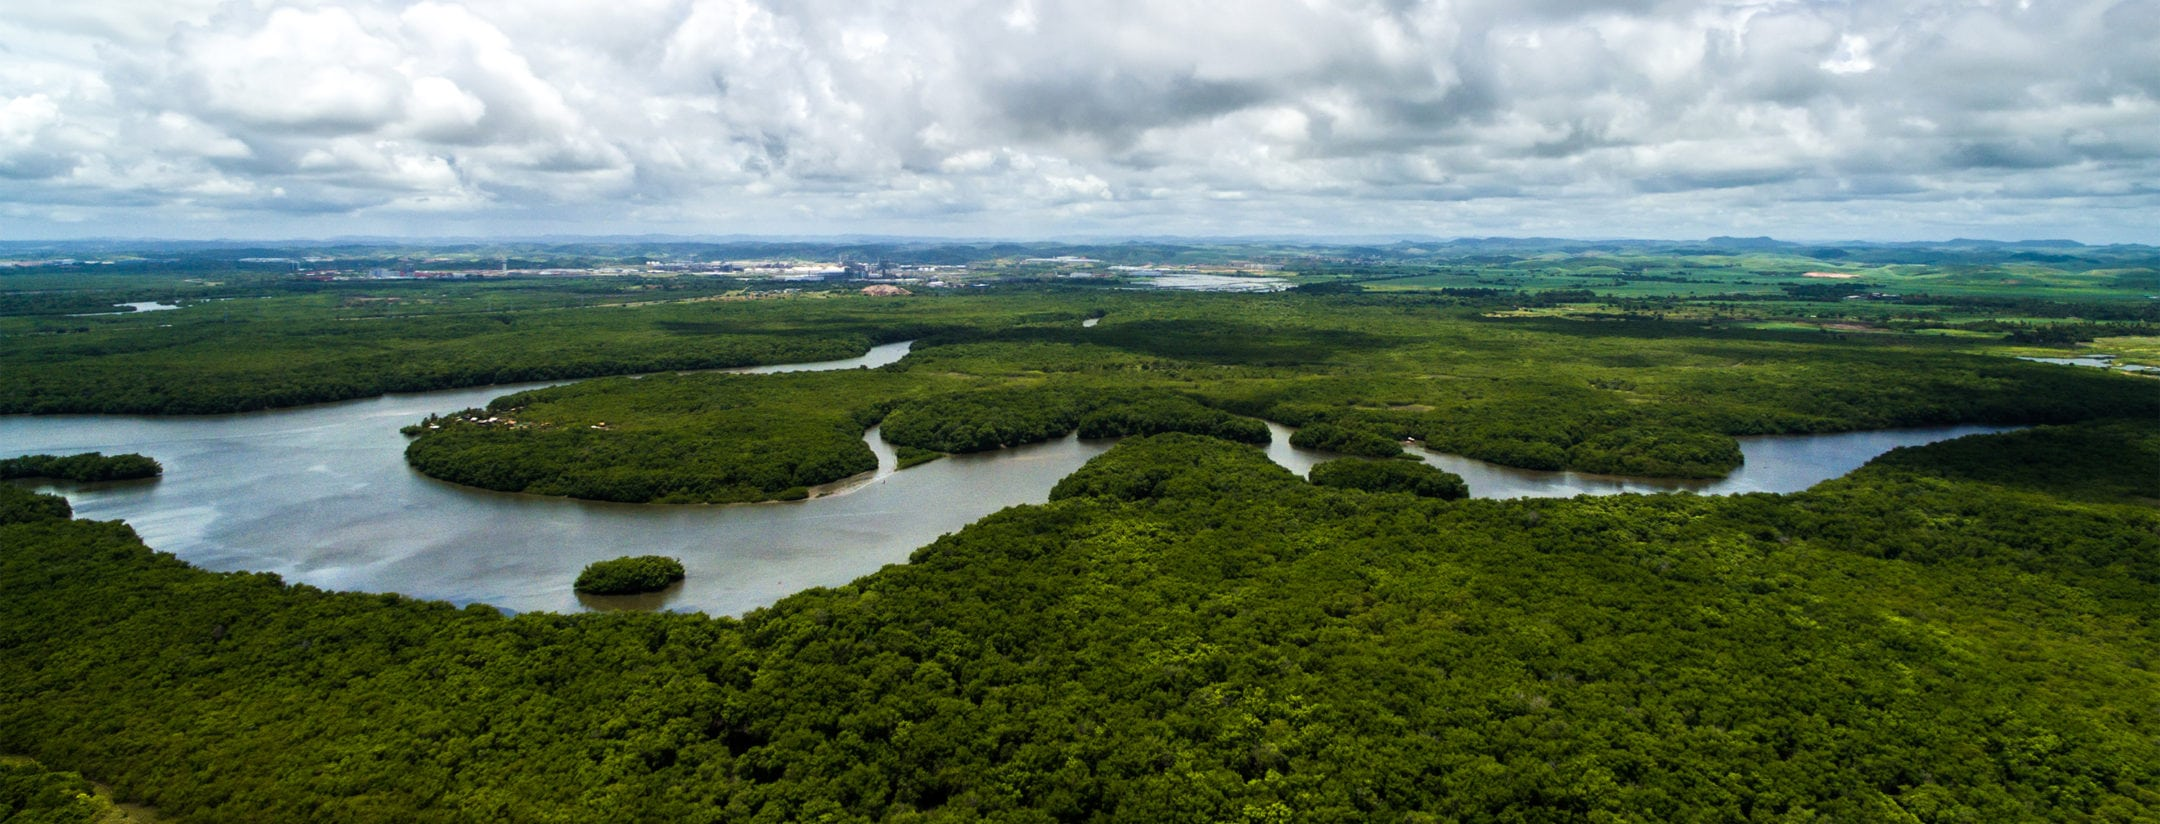 USAID Amazon Best Social and Environmental Practices Activity